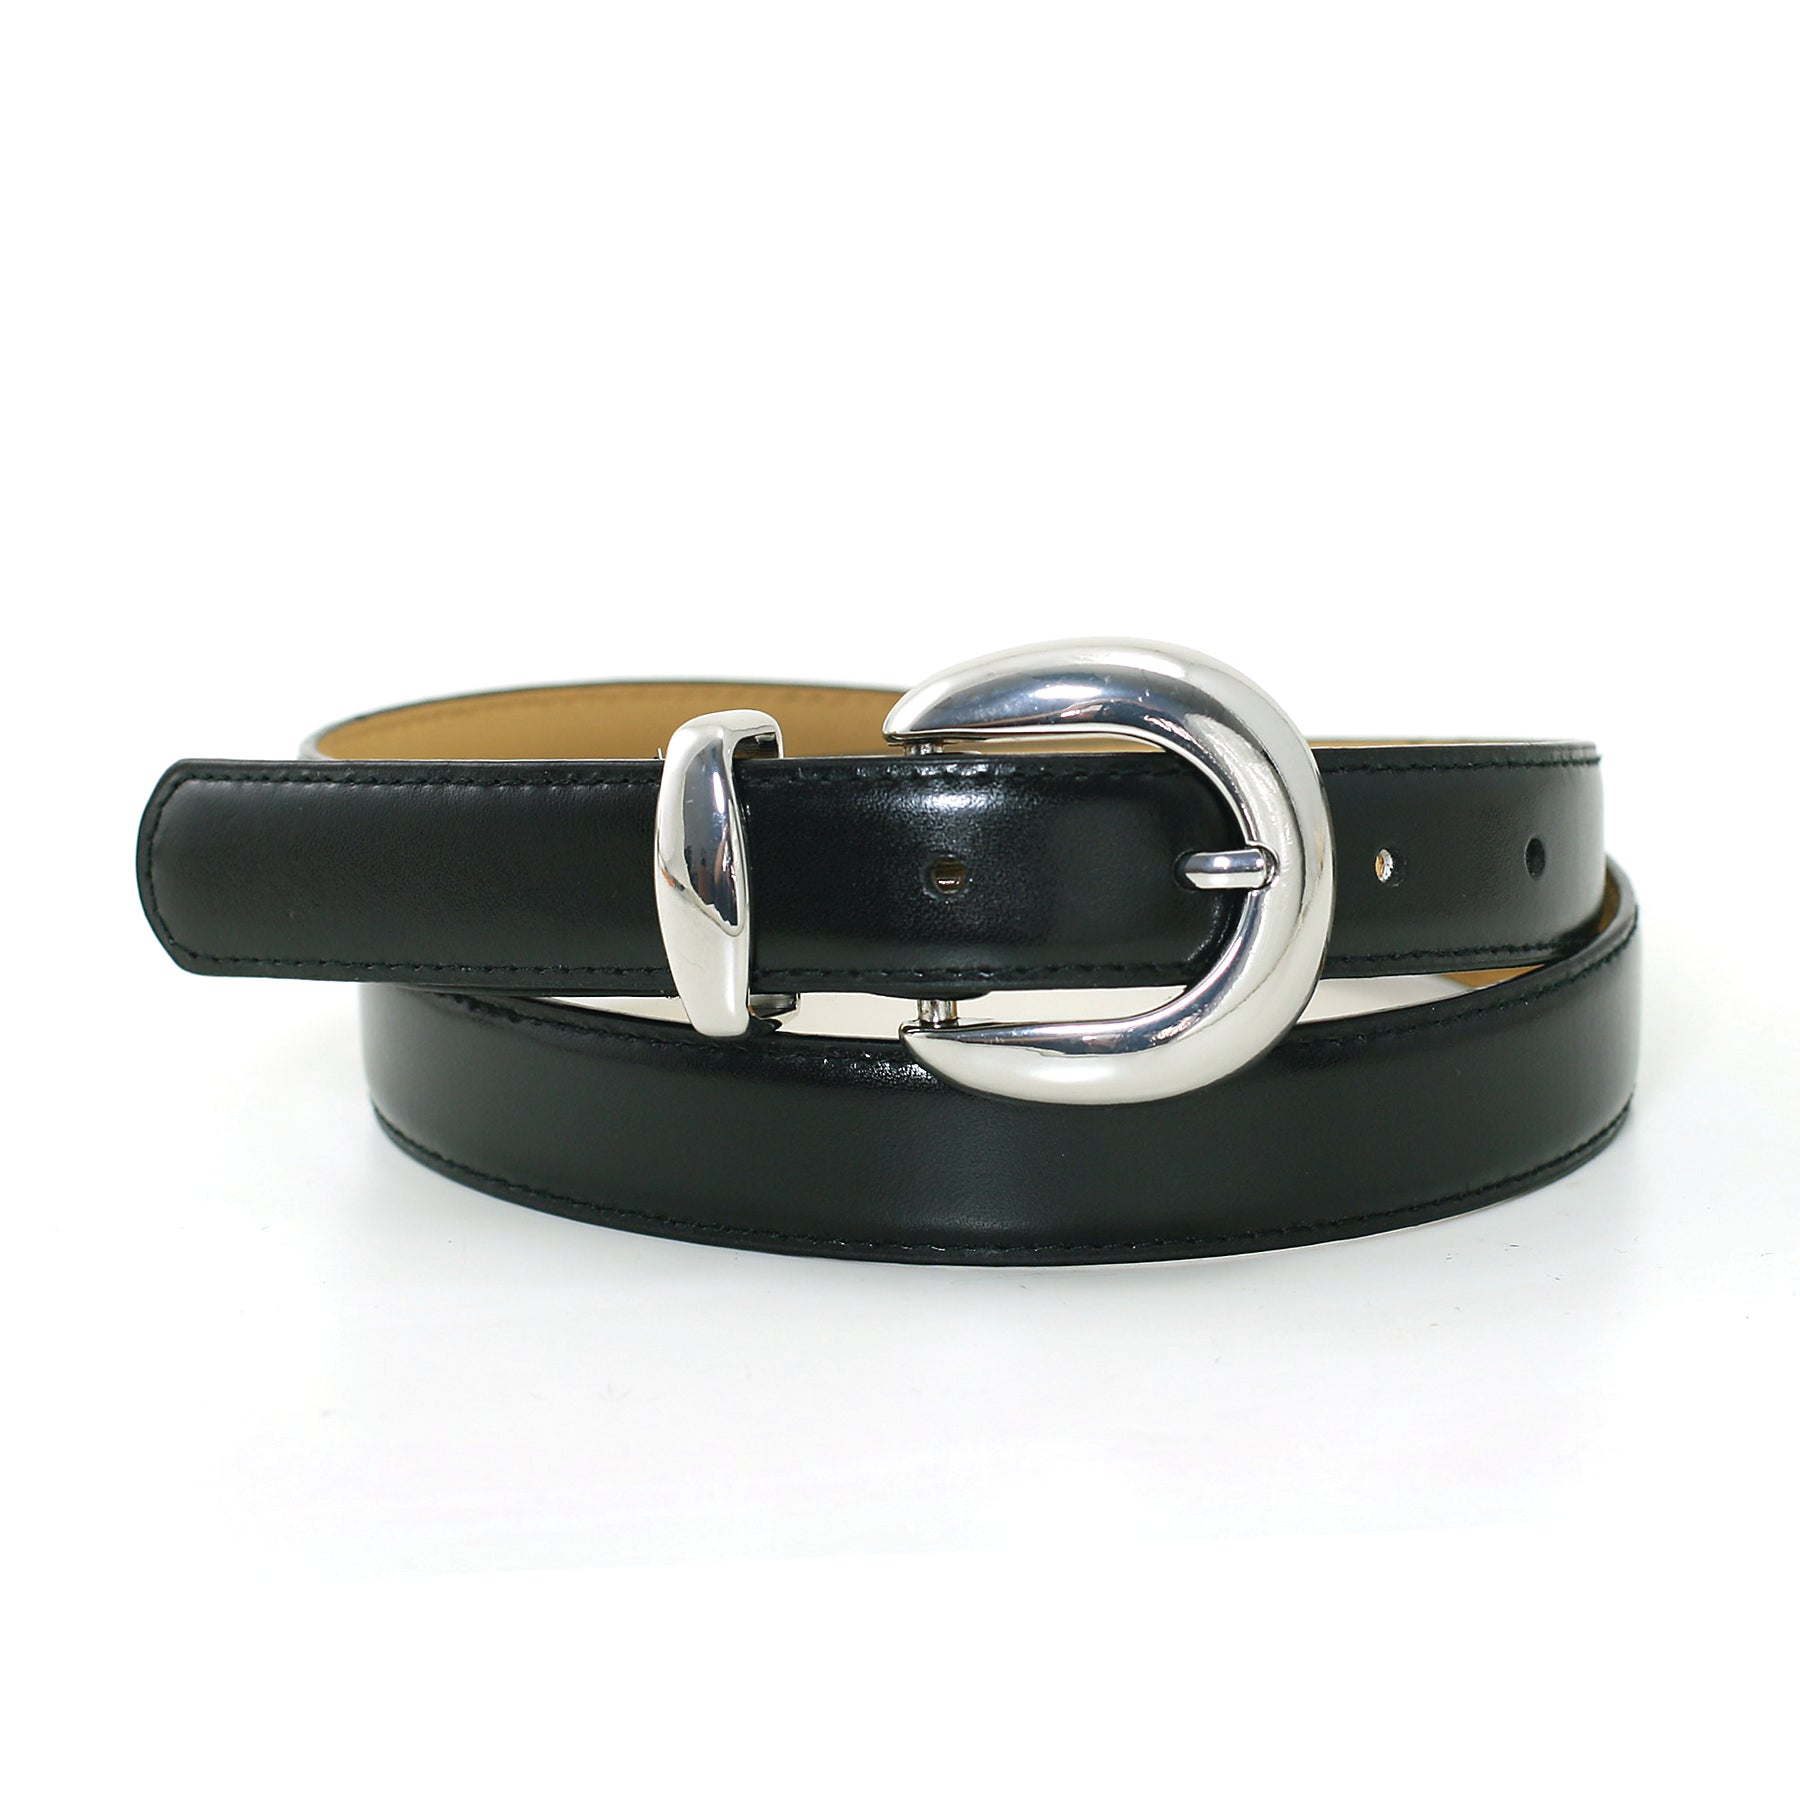 1 Inch Width Fashion Belt In Synthetic Material  front view